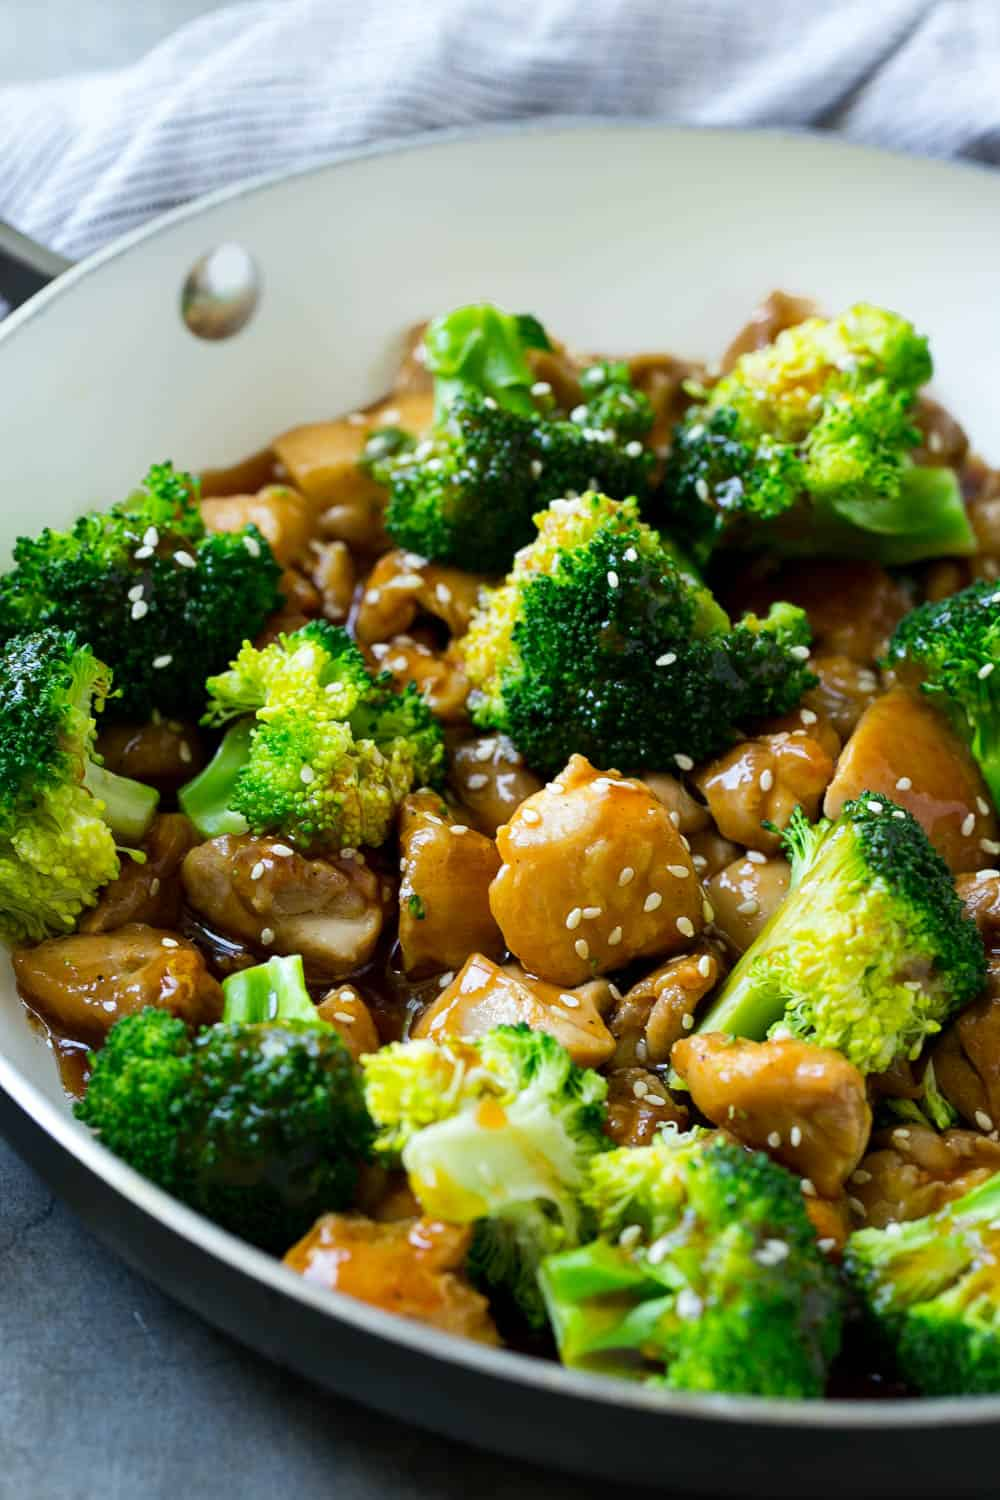 Chicken And Broccoli Stir-Fry  Healthy Fitness Meals-1207